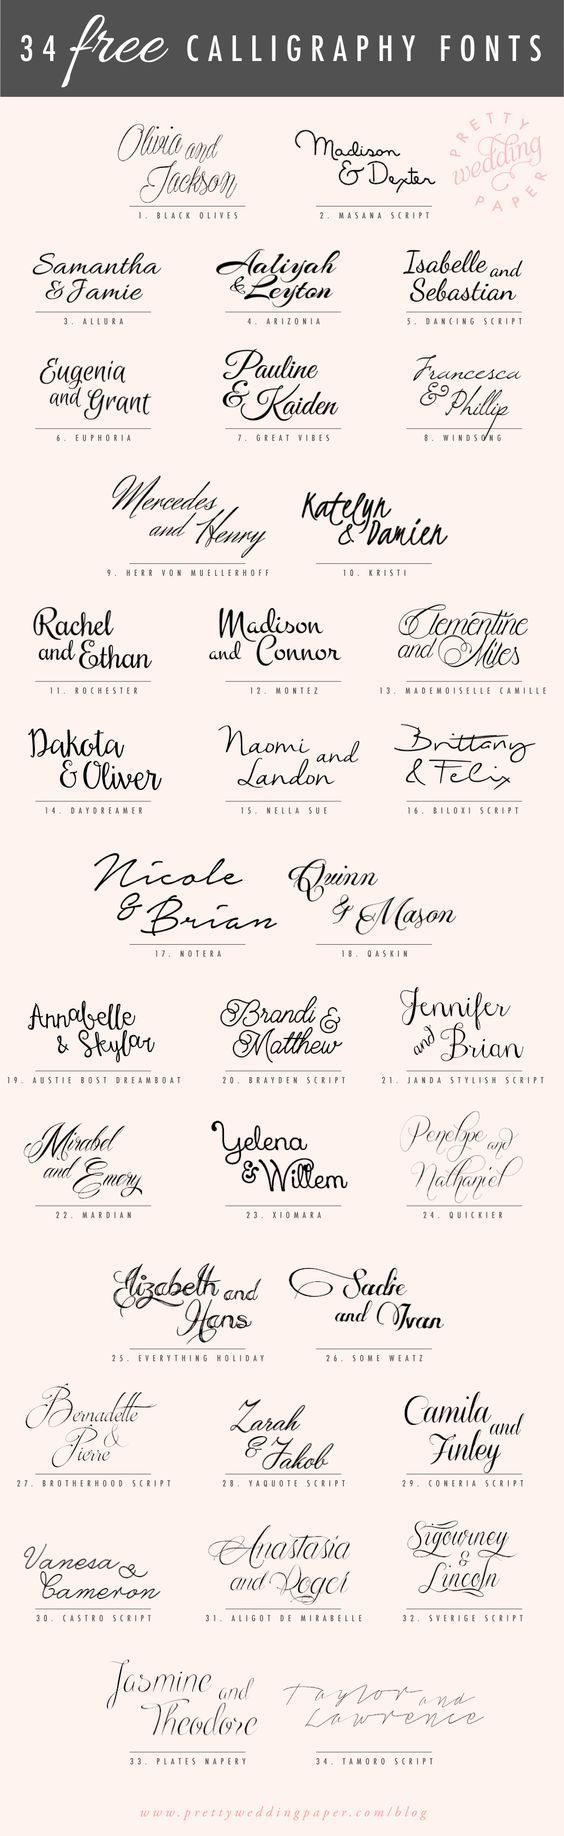 34 Free Calligraphy Script Fonts For Wedding Invitations Pretty Wedding Paper Free Calligraphy Fonts Modern Calligraphy Fonts Script Fonts